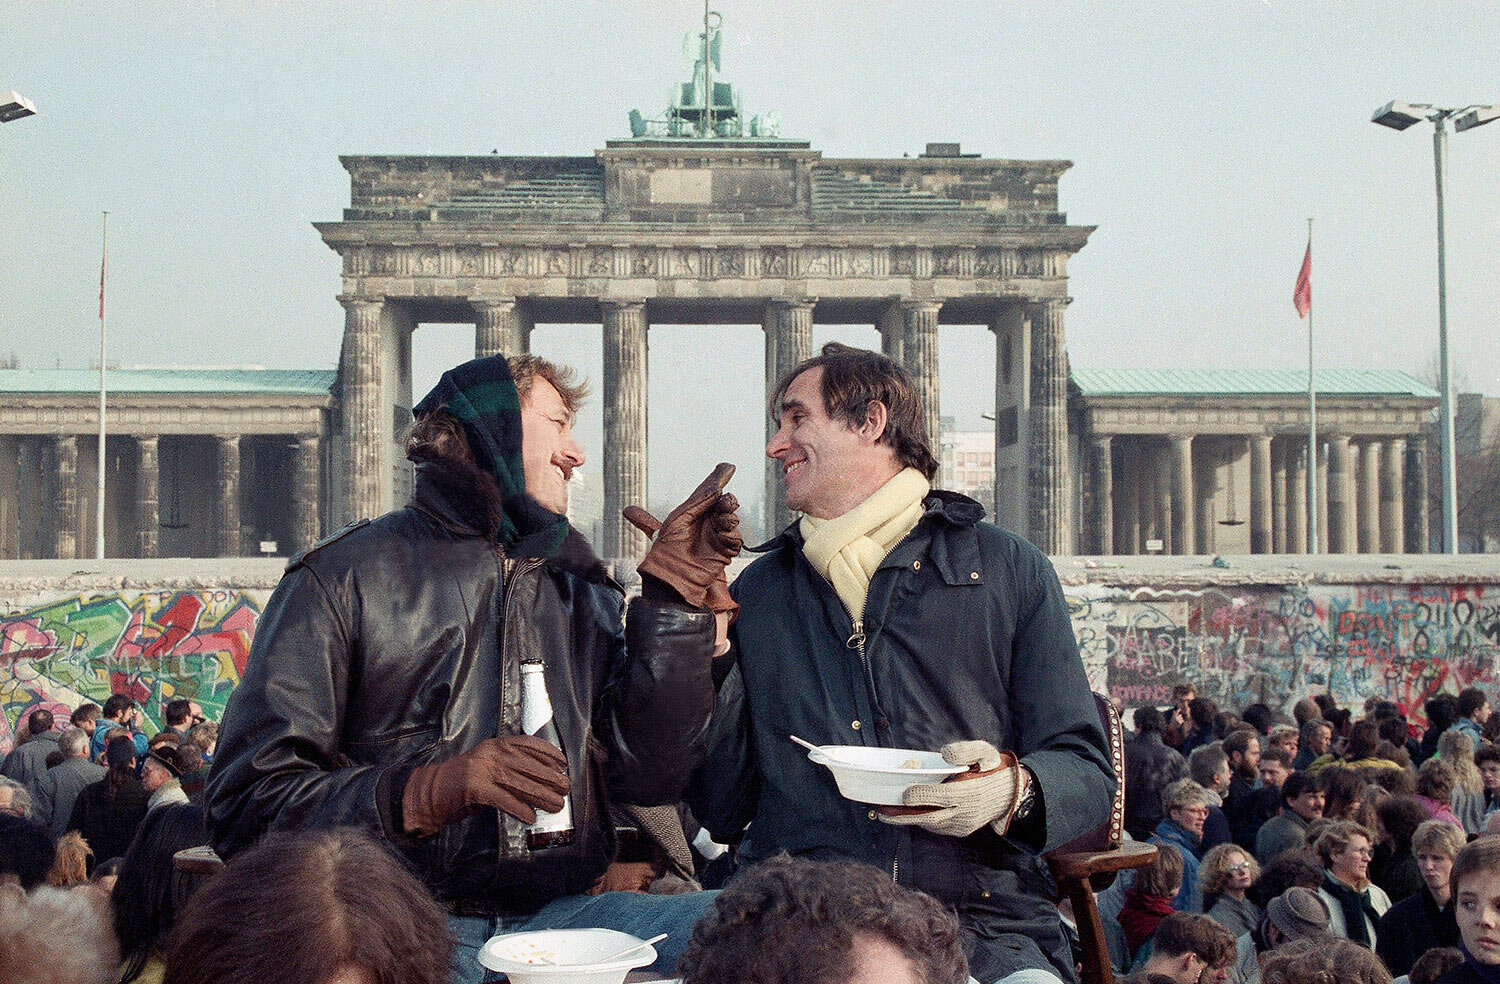 Two Berliners chat in front of Brandenburg Gate in Berlin, Nov. 12, 1989 while having lunch on a visitor's platform near the Berlin Wall. (AP Photo/Lionel Cironneau)